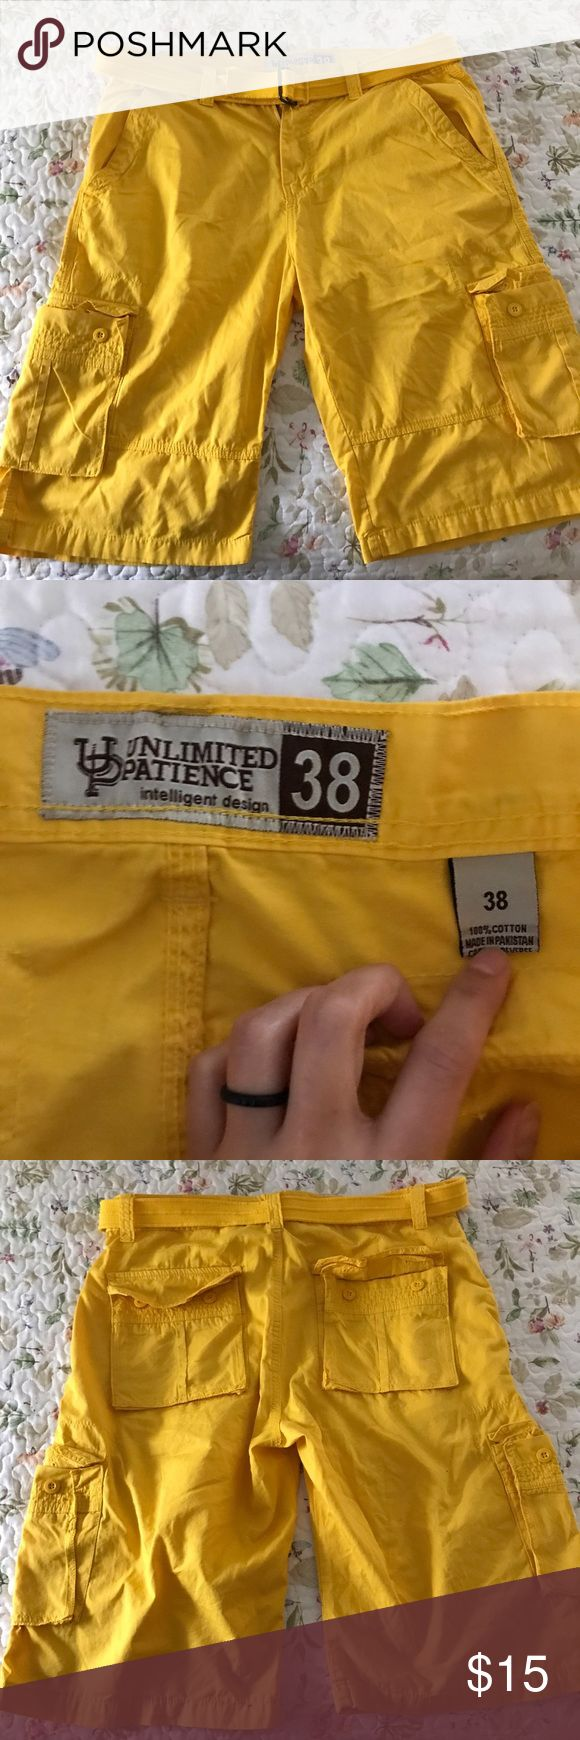 Men's Belted Cargo Shorts NWOT Yellow Belted Cargo shorts for men. Size 38. Shorts Cargo